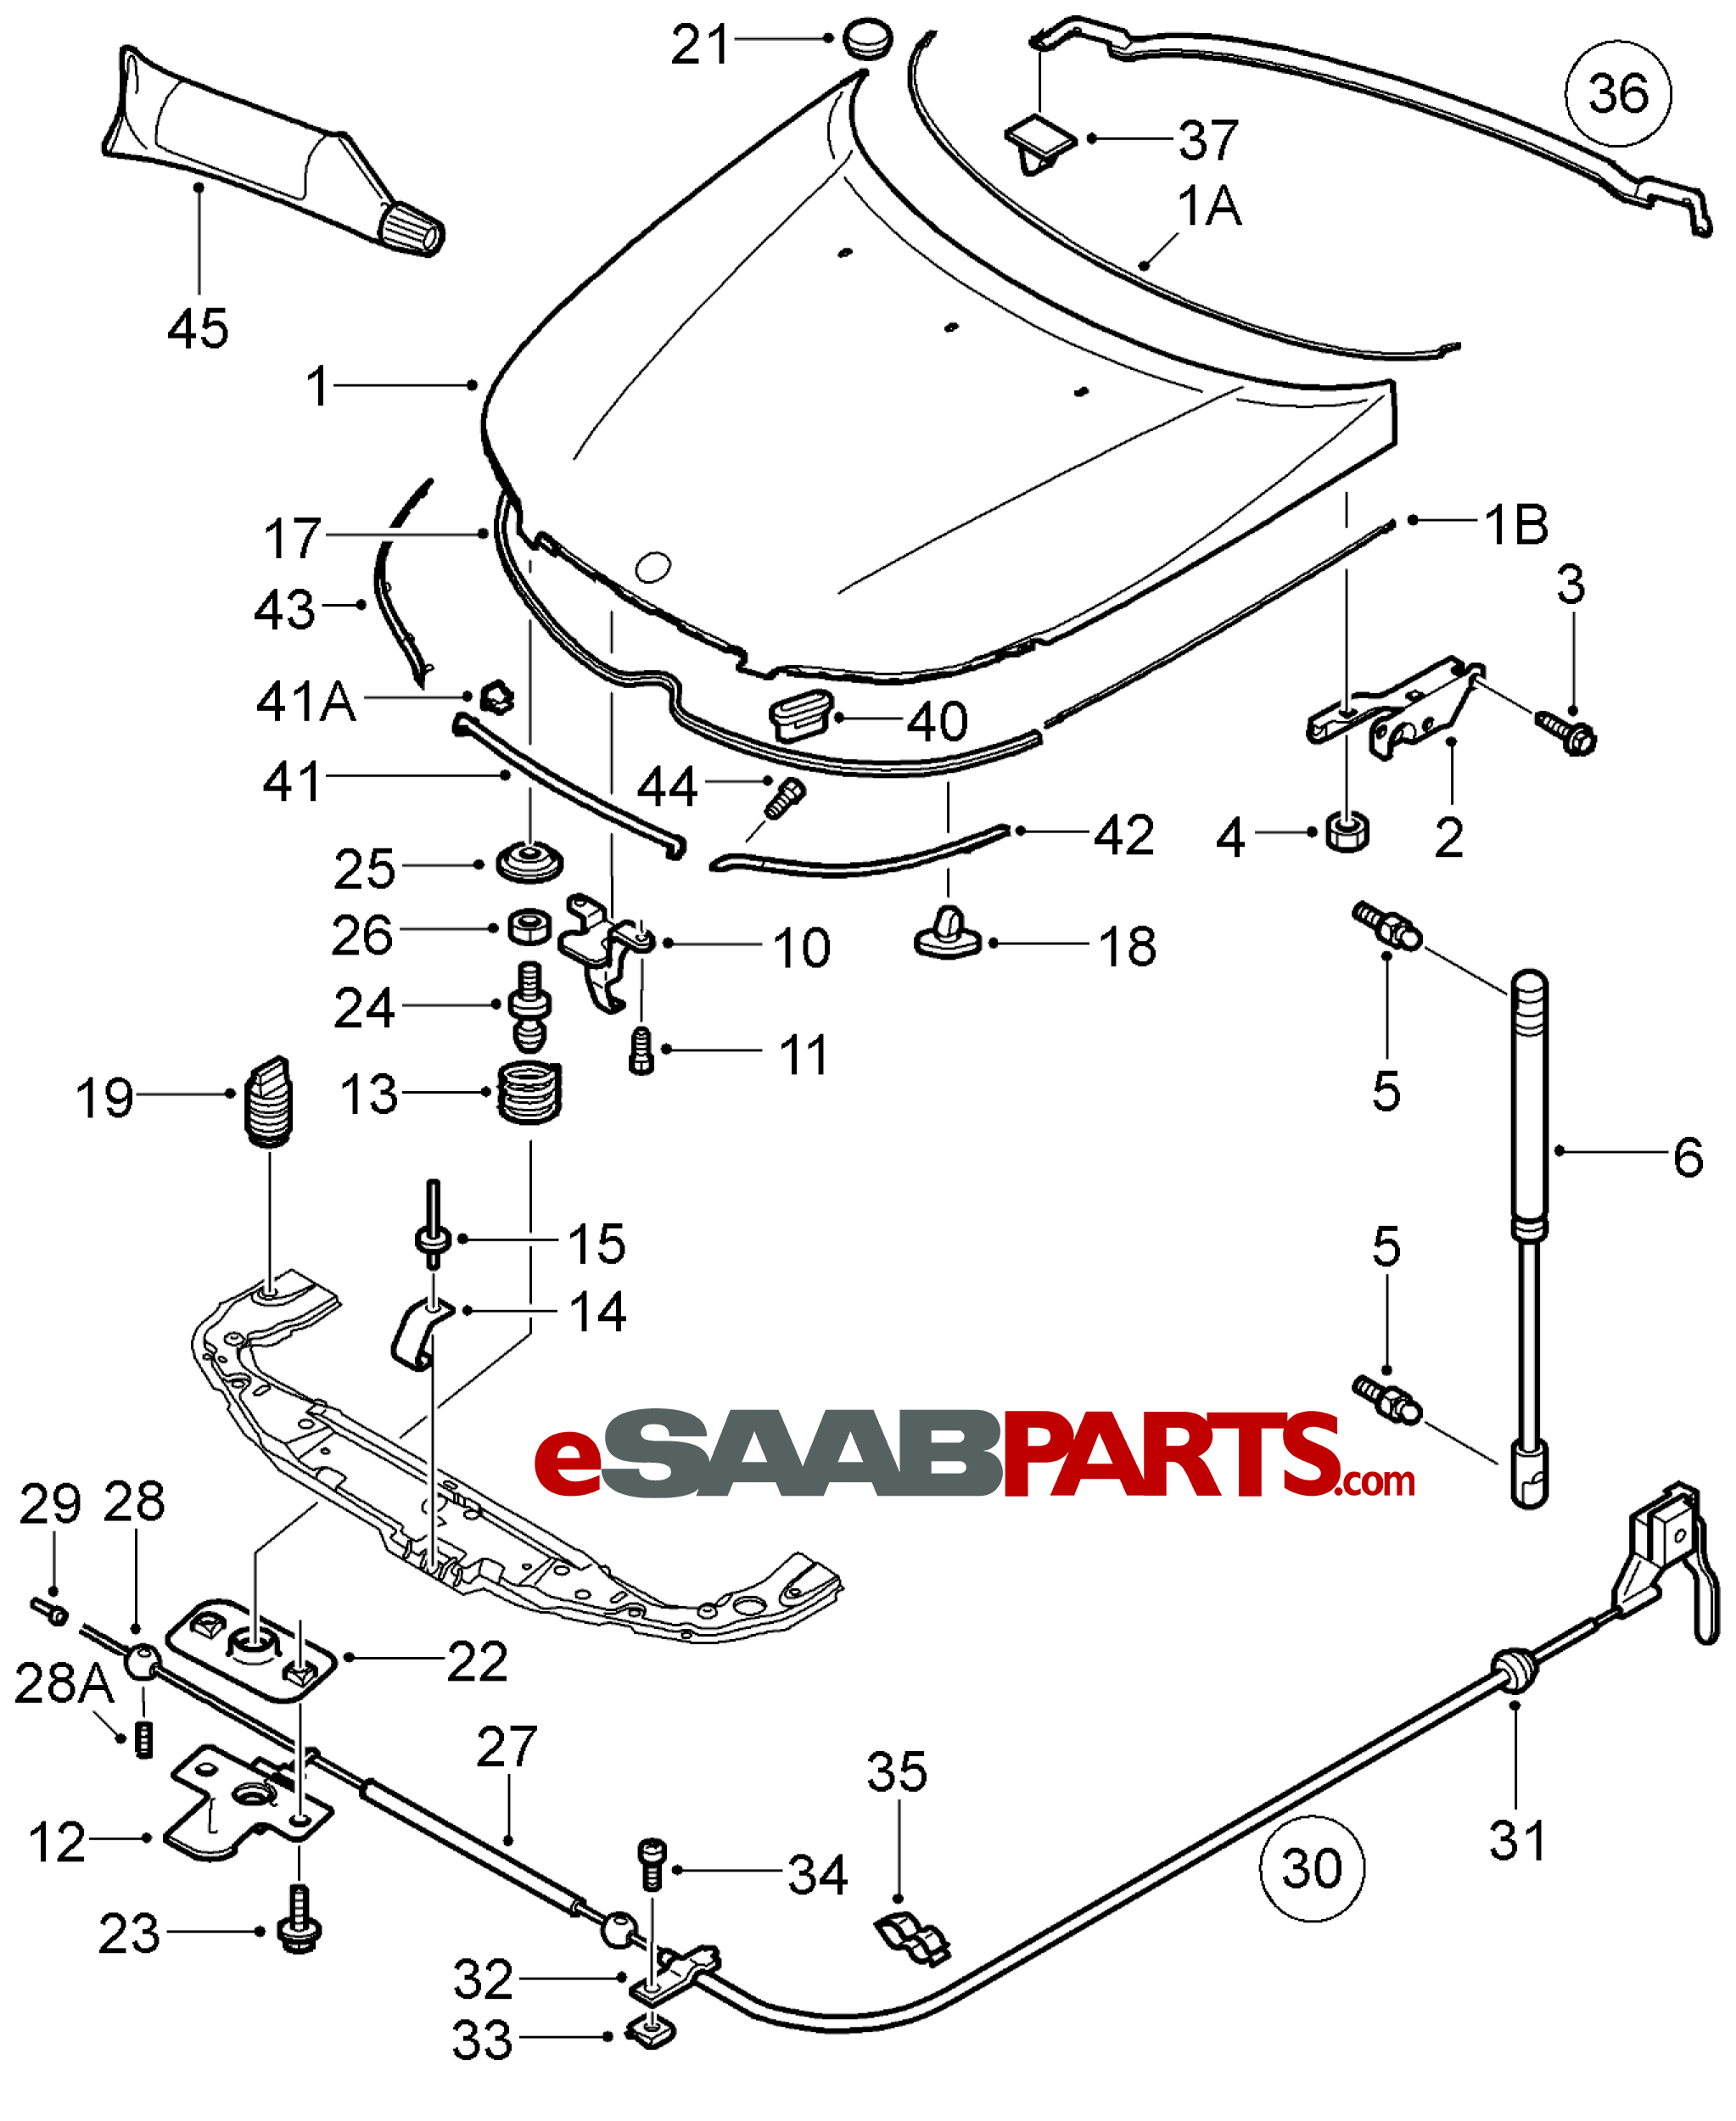 1996 Saab 900s Parts Diagram. Saab. Auto Wiring Diagram